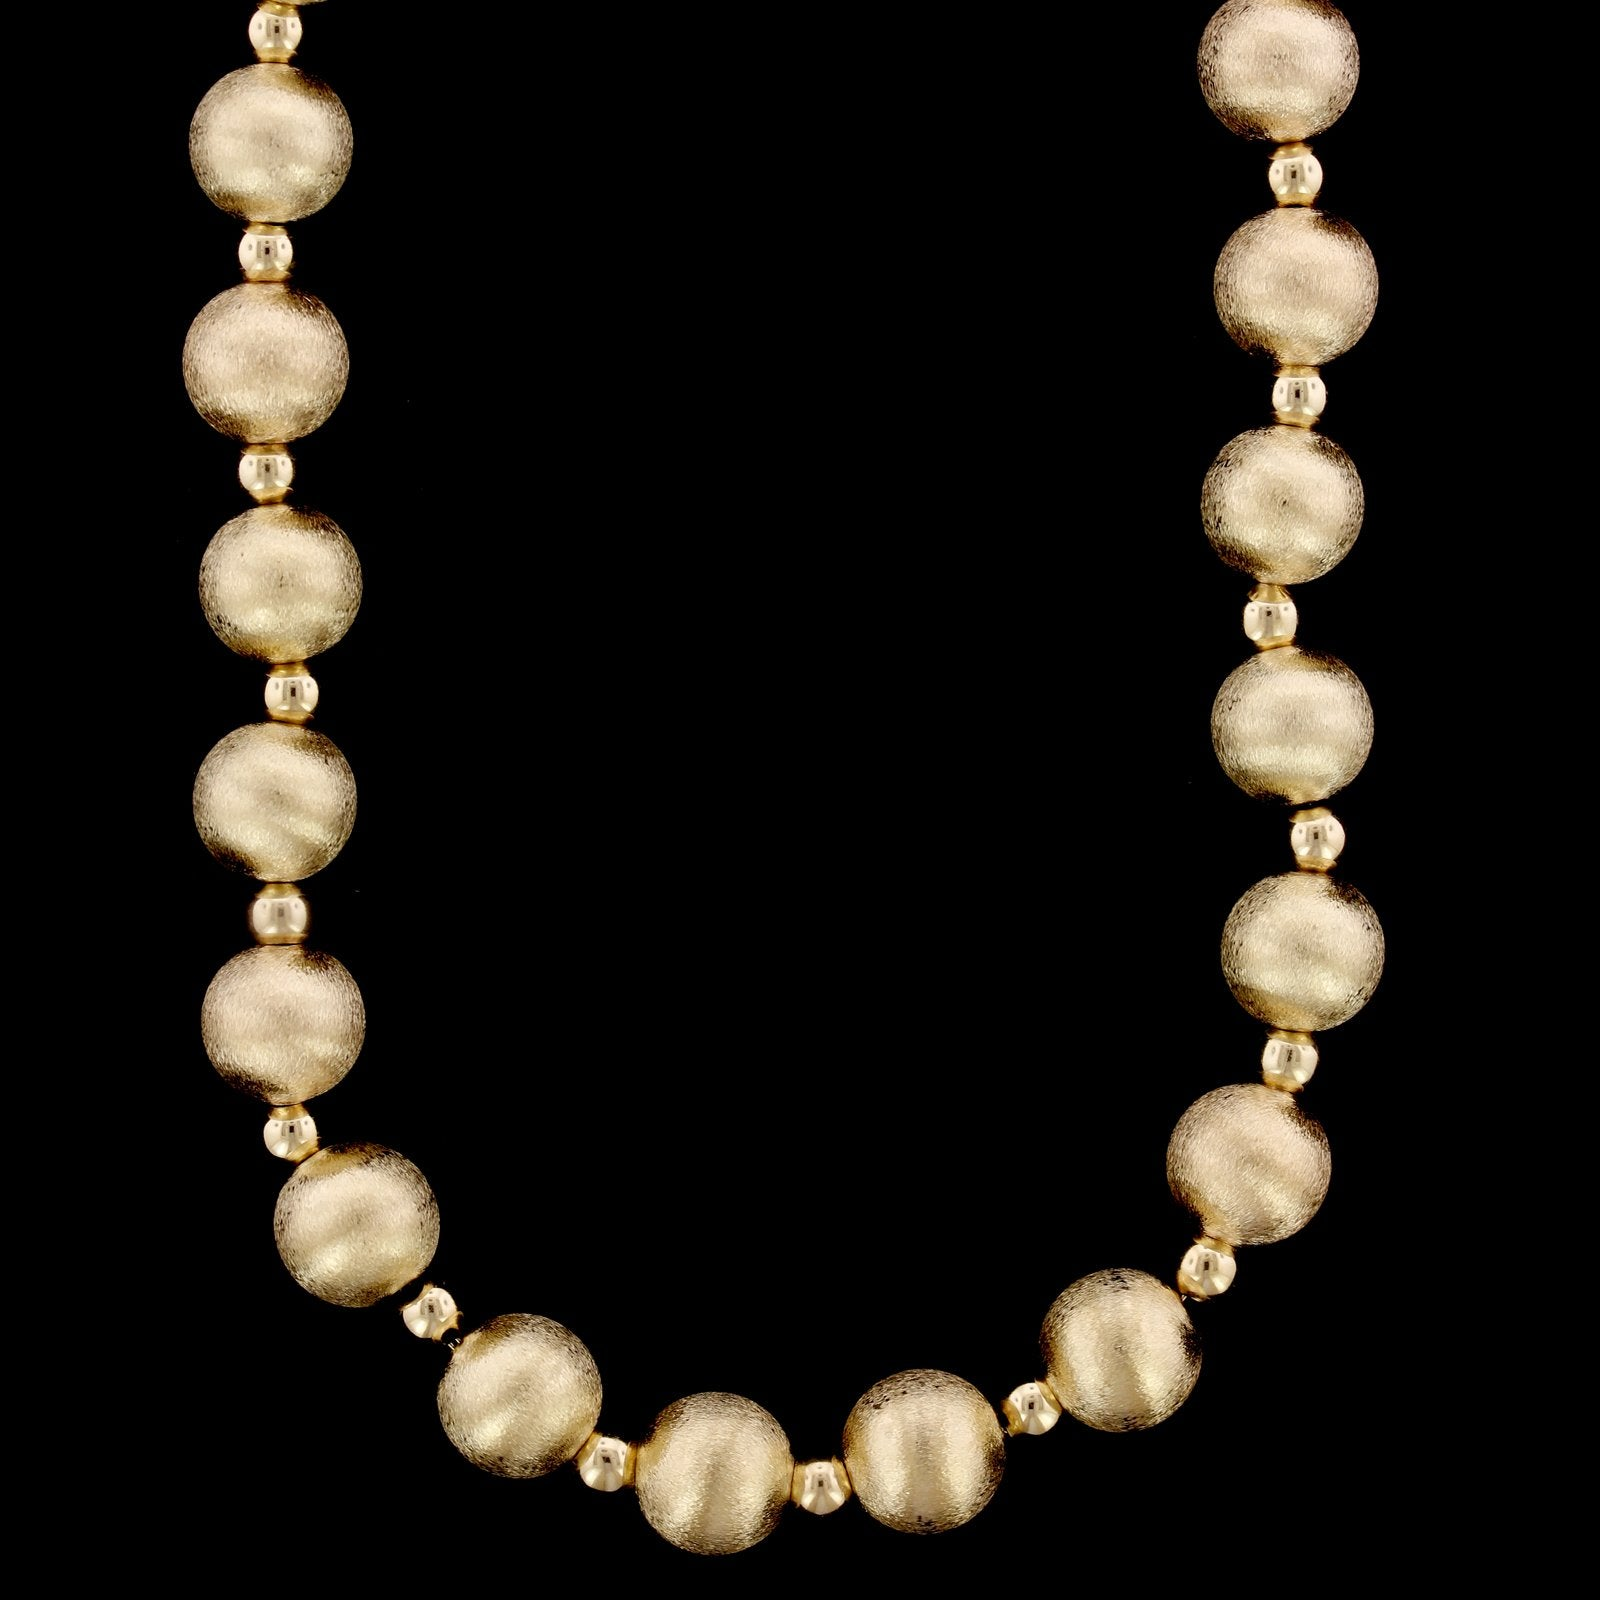 14K Yellow Gold Estate Bead Necklace